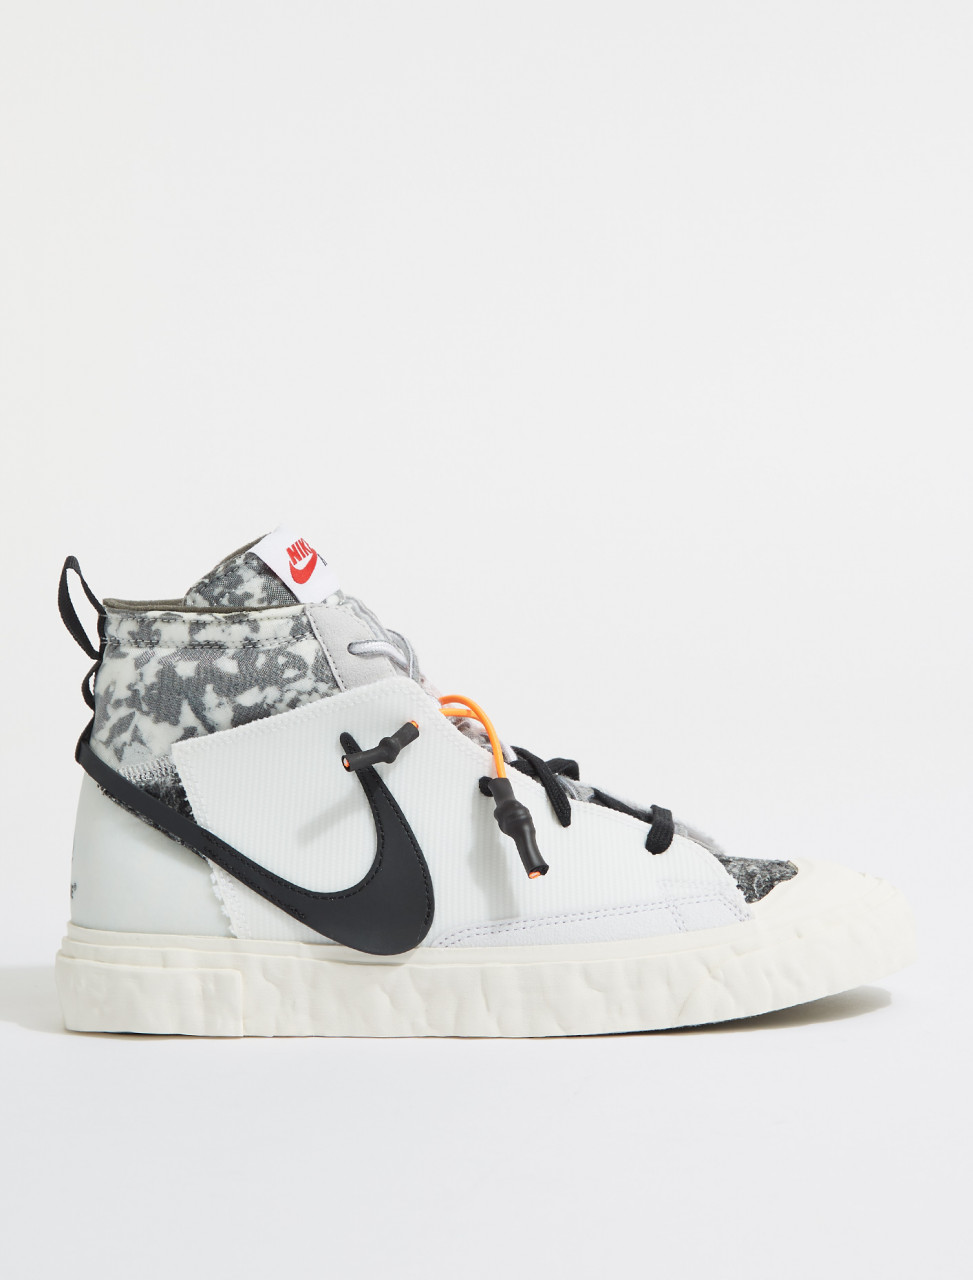 CZ3589-100 NIKE BLAZER MID x READYMADE IN WHITE BLACK